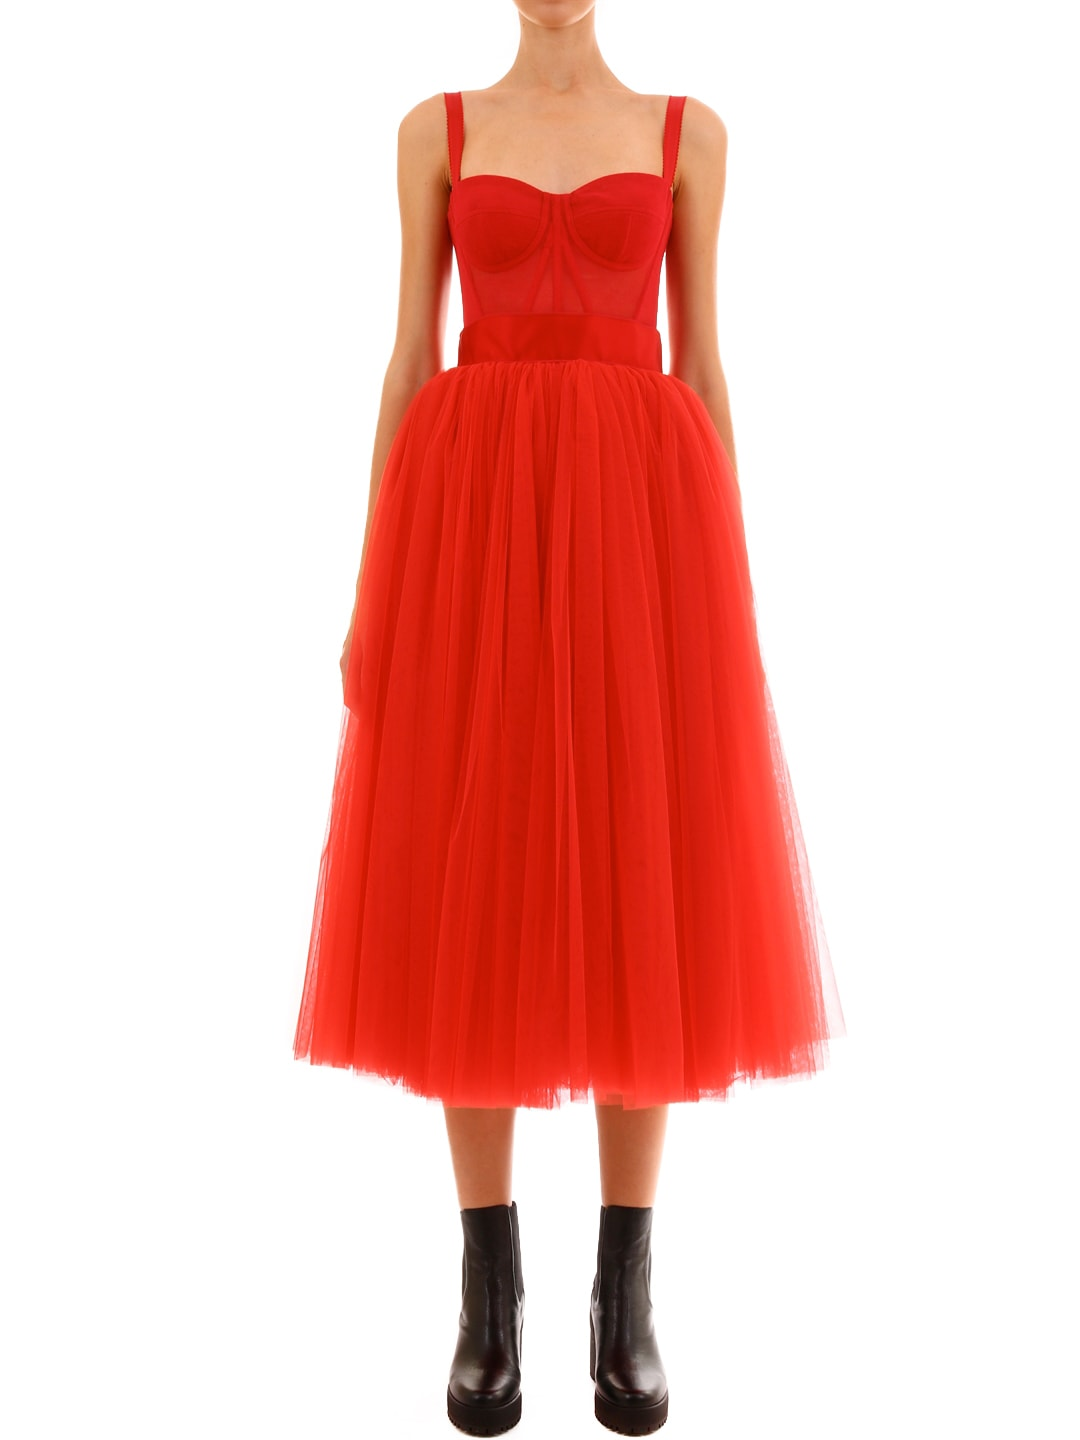 Dolce & Gabbana Doll Dress Red Tulle